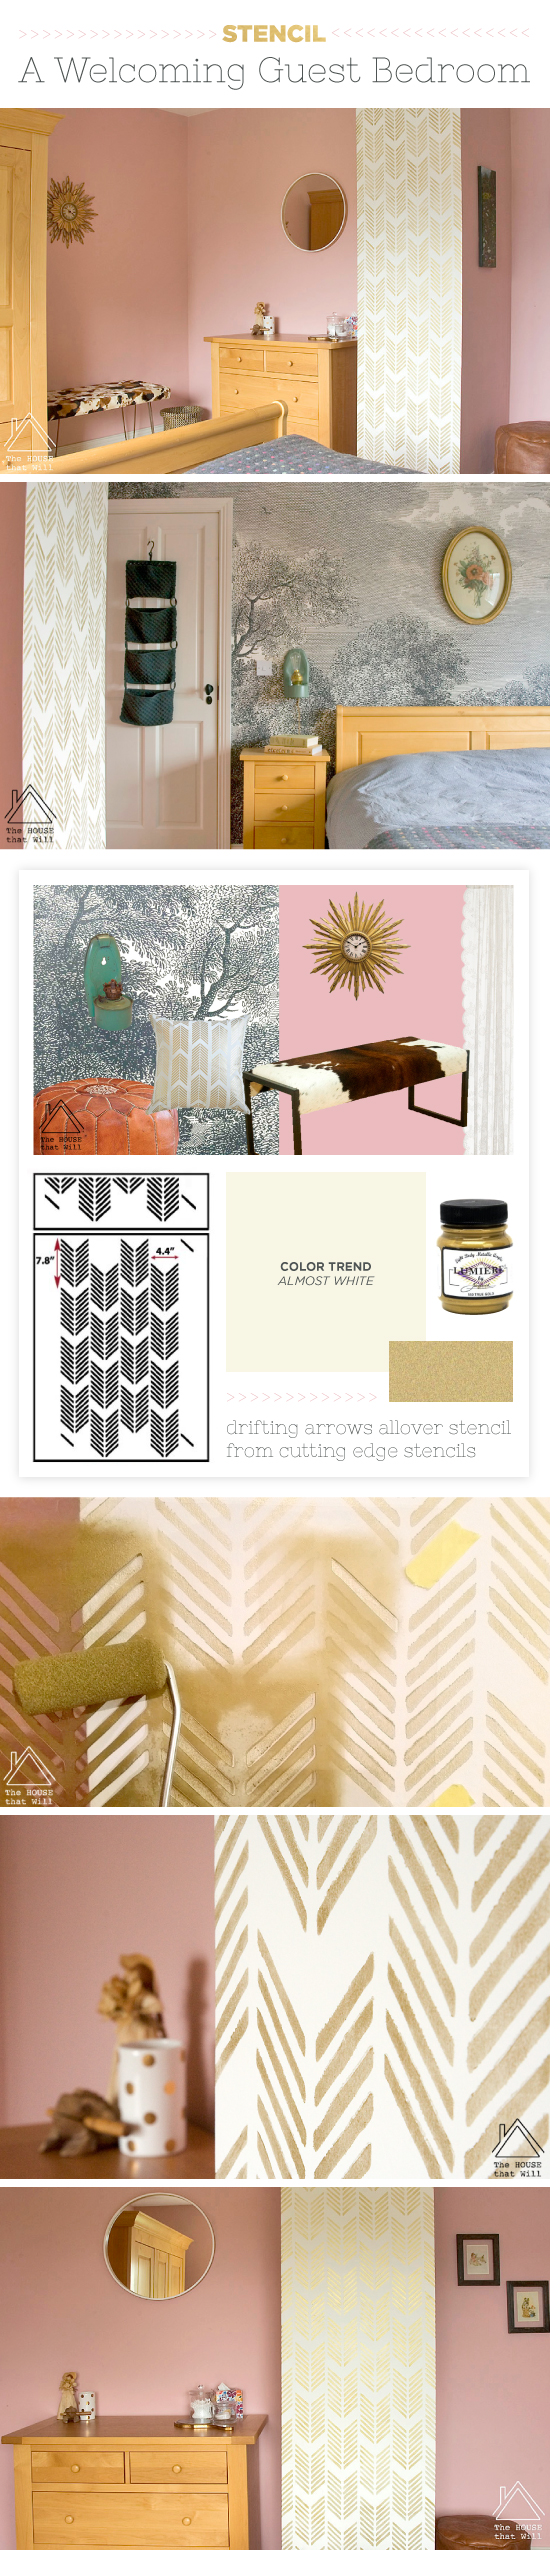 stencil a welcoming guest bedroom stencil stories cutting edge stencils shares a diy stenciled accent wall in metallic gold in a guest bedroom